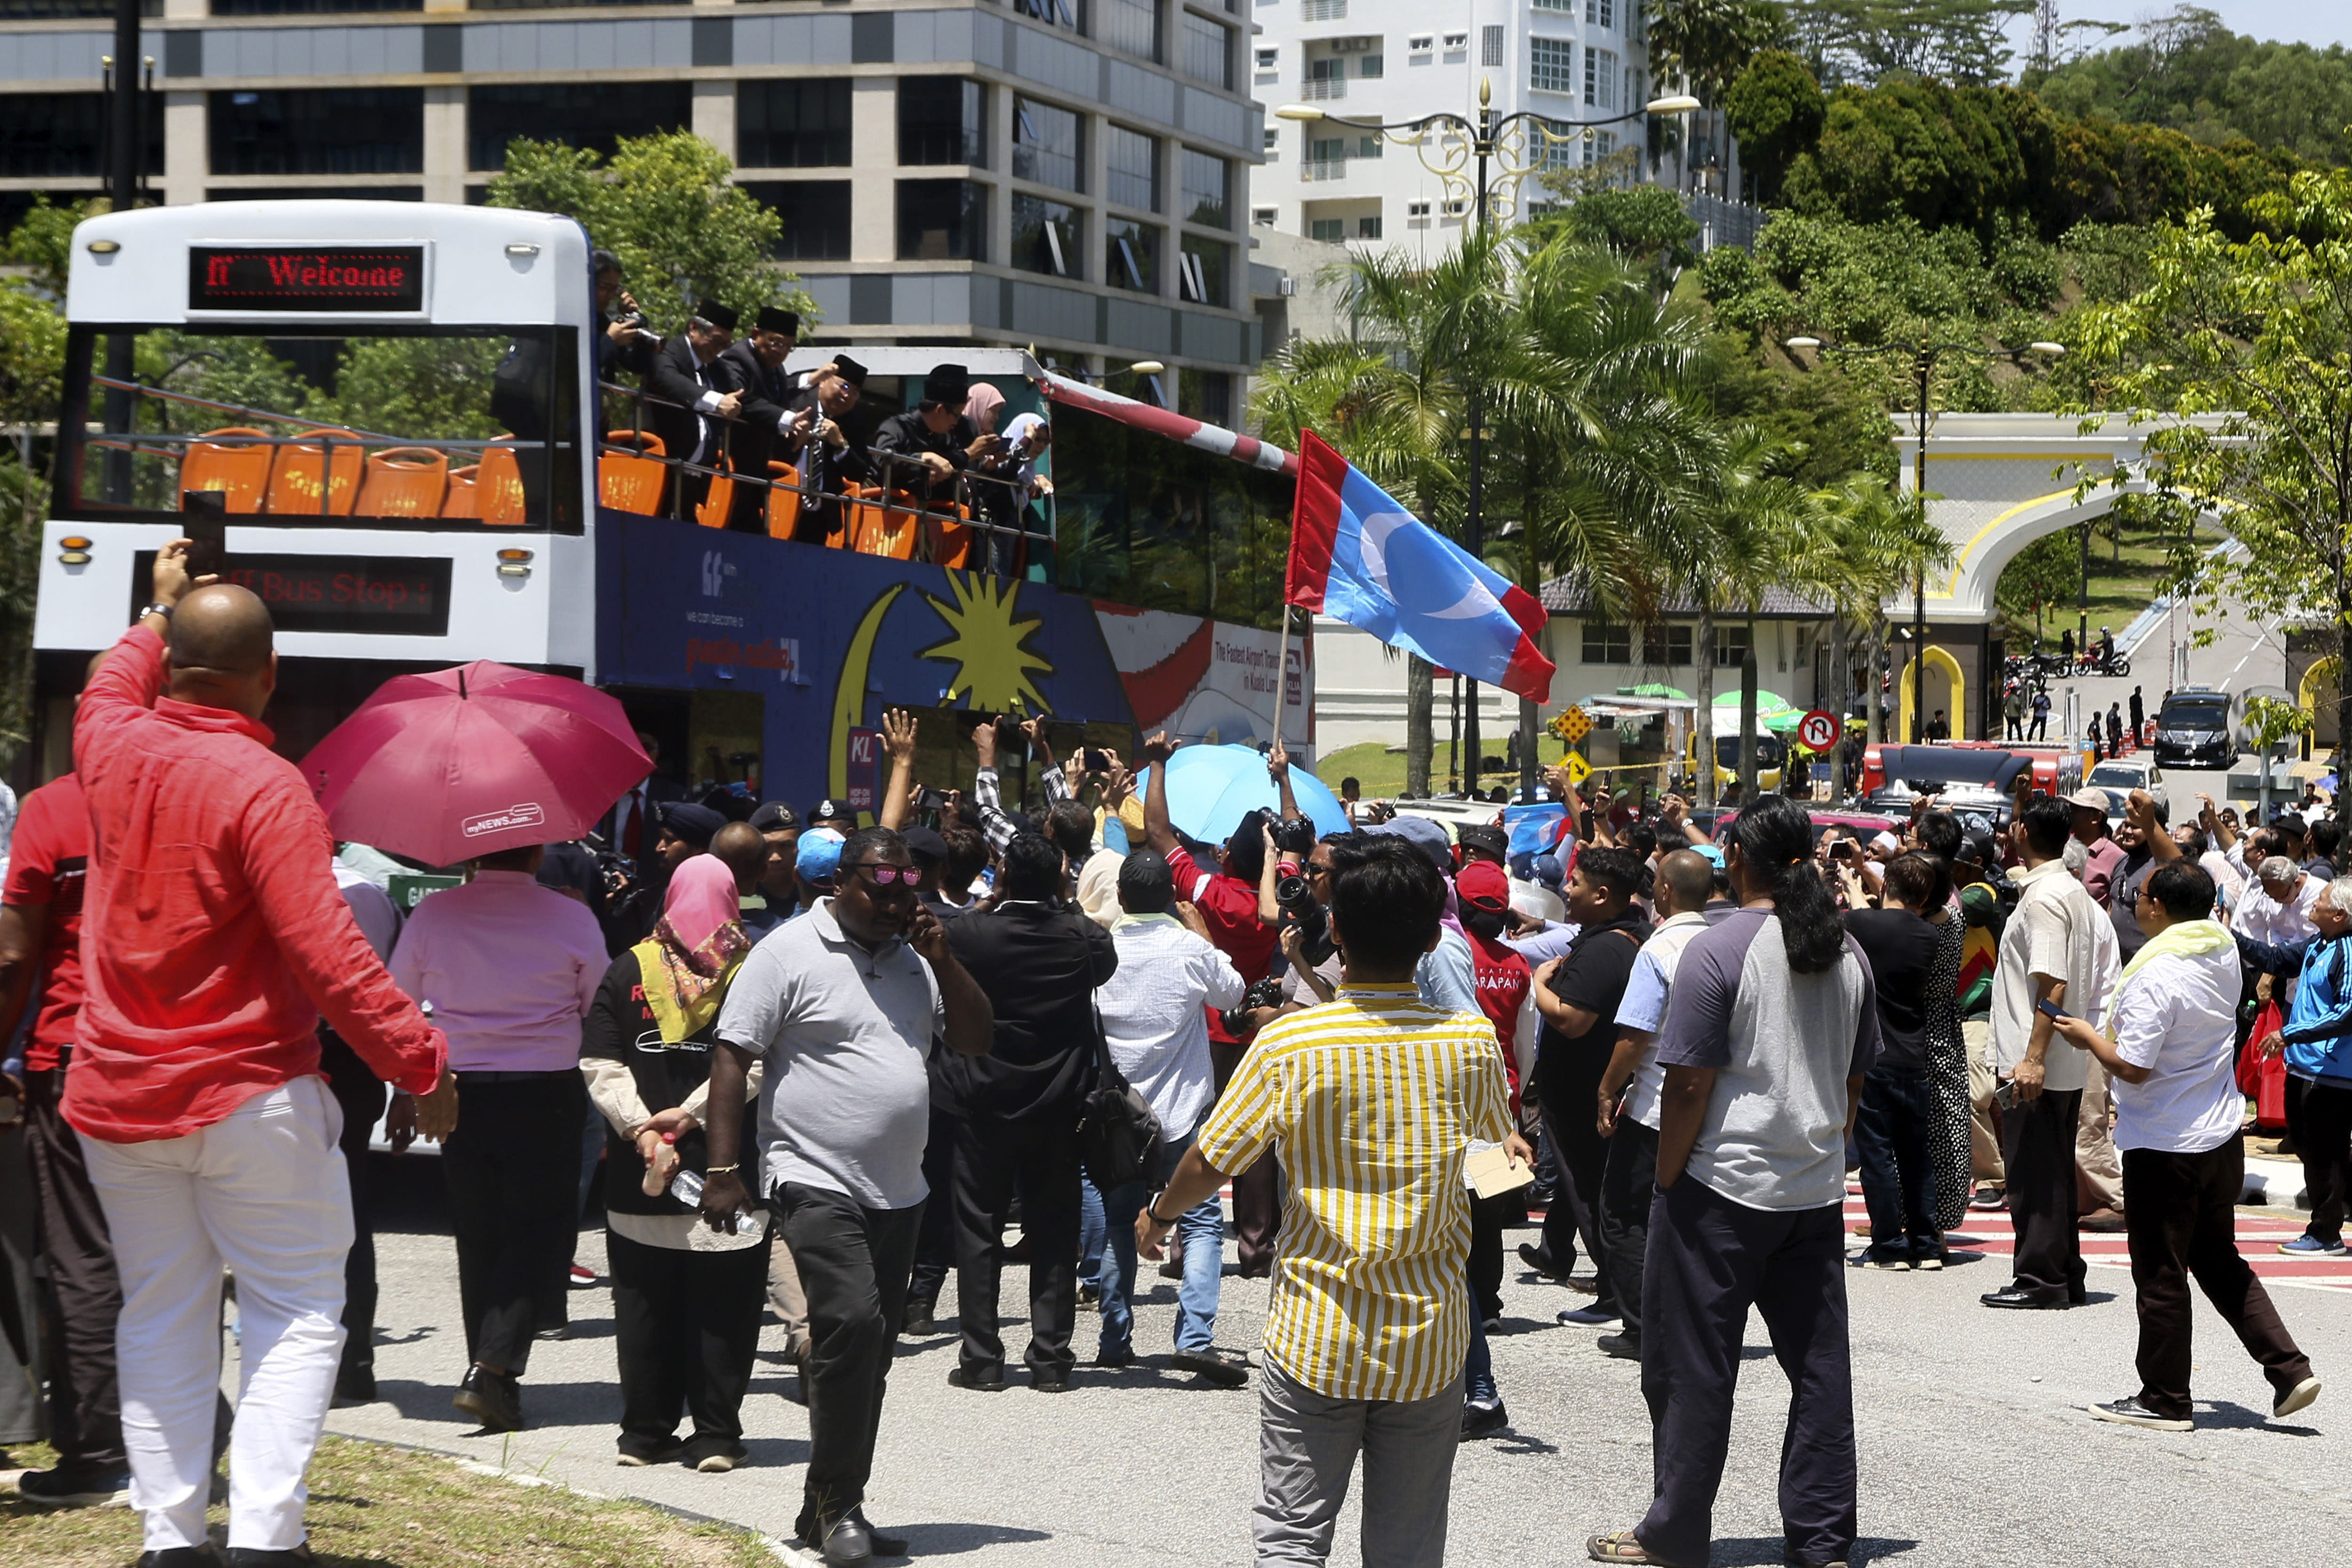 Lawmakers from the People's Justice Party on a double-decker bus wave to supporters as they head to the National Palace to meet the king in Kuala Lumpur, Malaysia, Wednesday, Feb. 26, 2020. Malaysia's king held unusual consultations with lawmakers for a second day Wednesday to resolve a political vacuum caused by the abrupt collapse of the ruling coalition and the resignation of Prime Minister Mahathir Mohamad. (AP Photo)